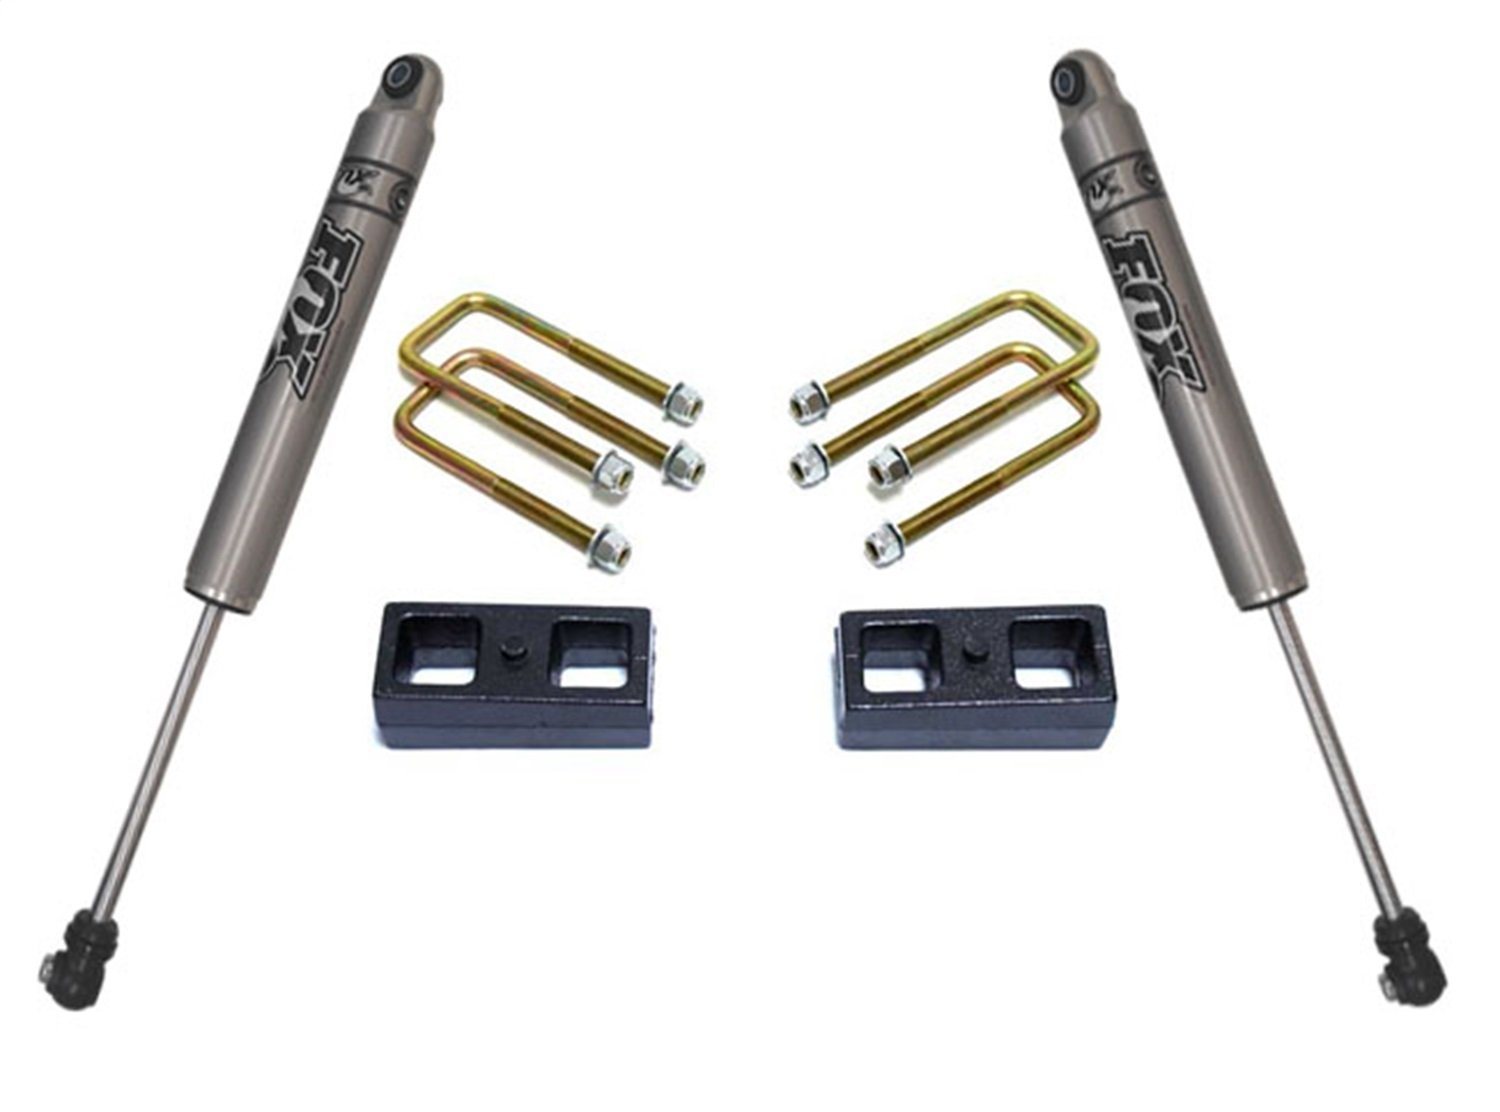 Rear Drop Incl MaxTrac KS330123 Lowering Kit 2 in Front Spindles//Front Maxtrac Shocks//Rear Blocks and U Bolts Rear Maxtrac Shocks Lowering Kit Front Drop 3 in